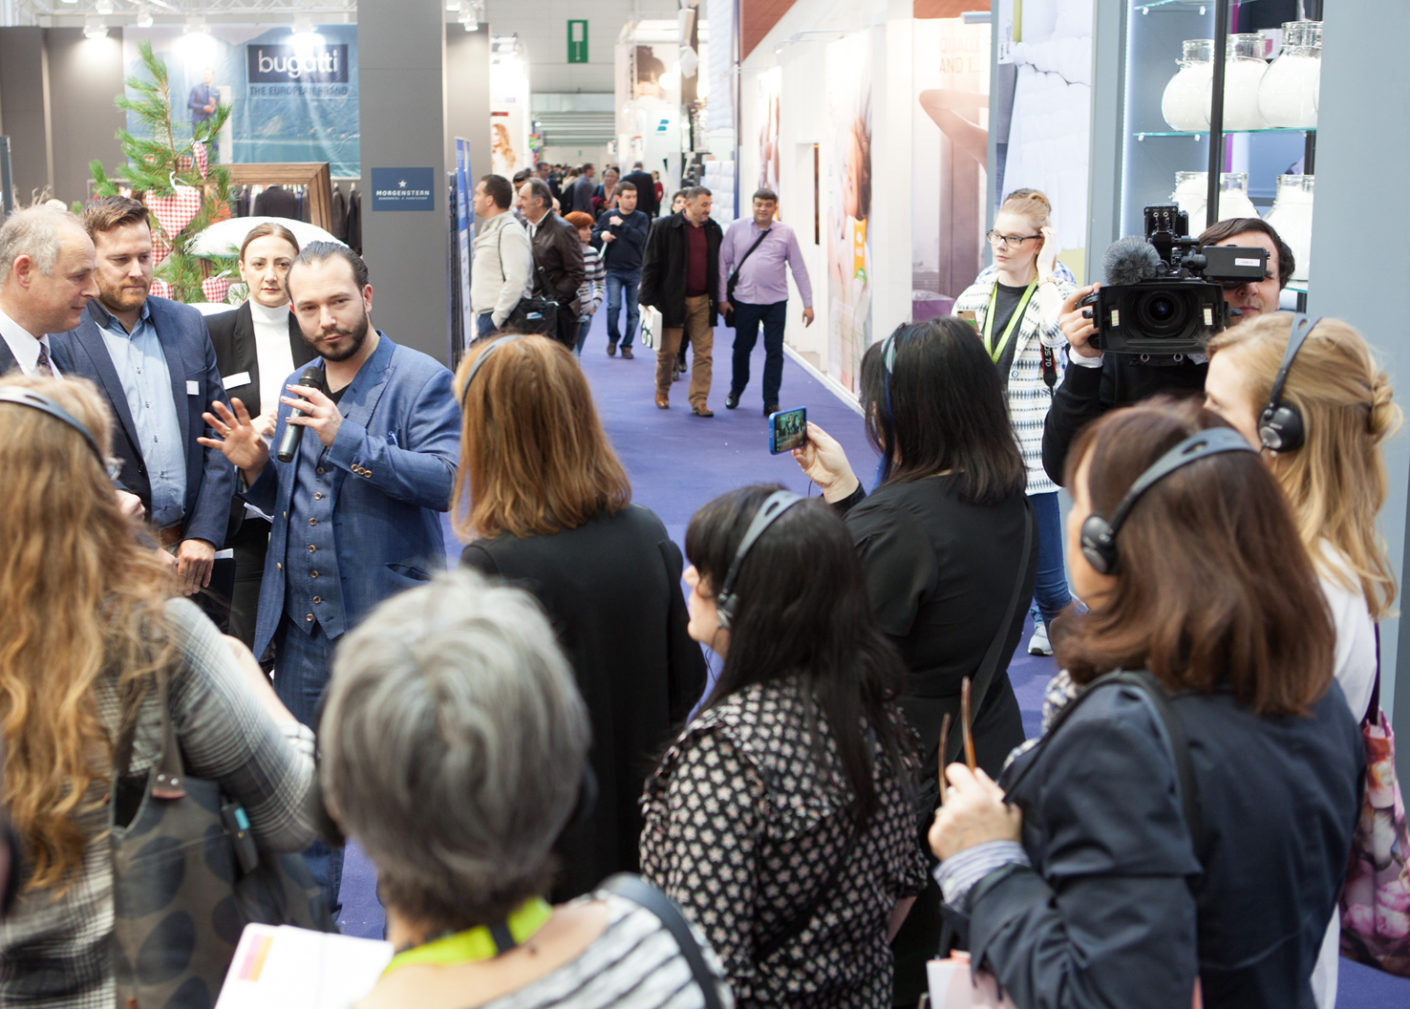 In Frankfurt am Main, Heimtextil once again offers specialist lectures, presentations, competitions, evening events and expert tours as an international platform for textile trends.